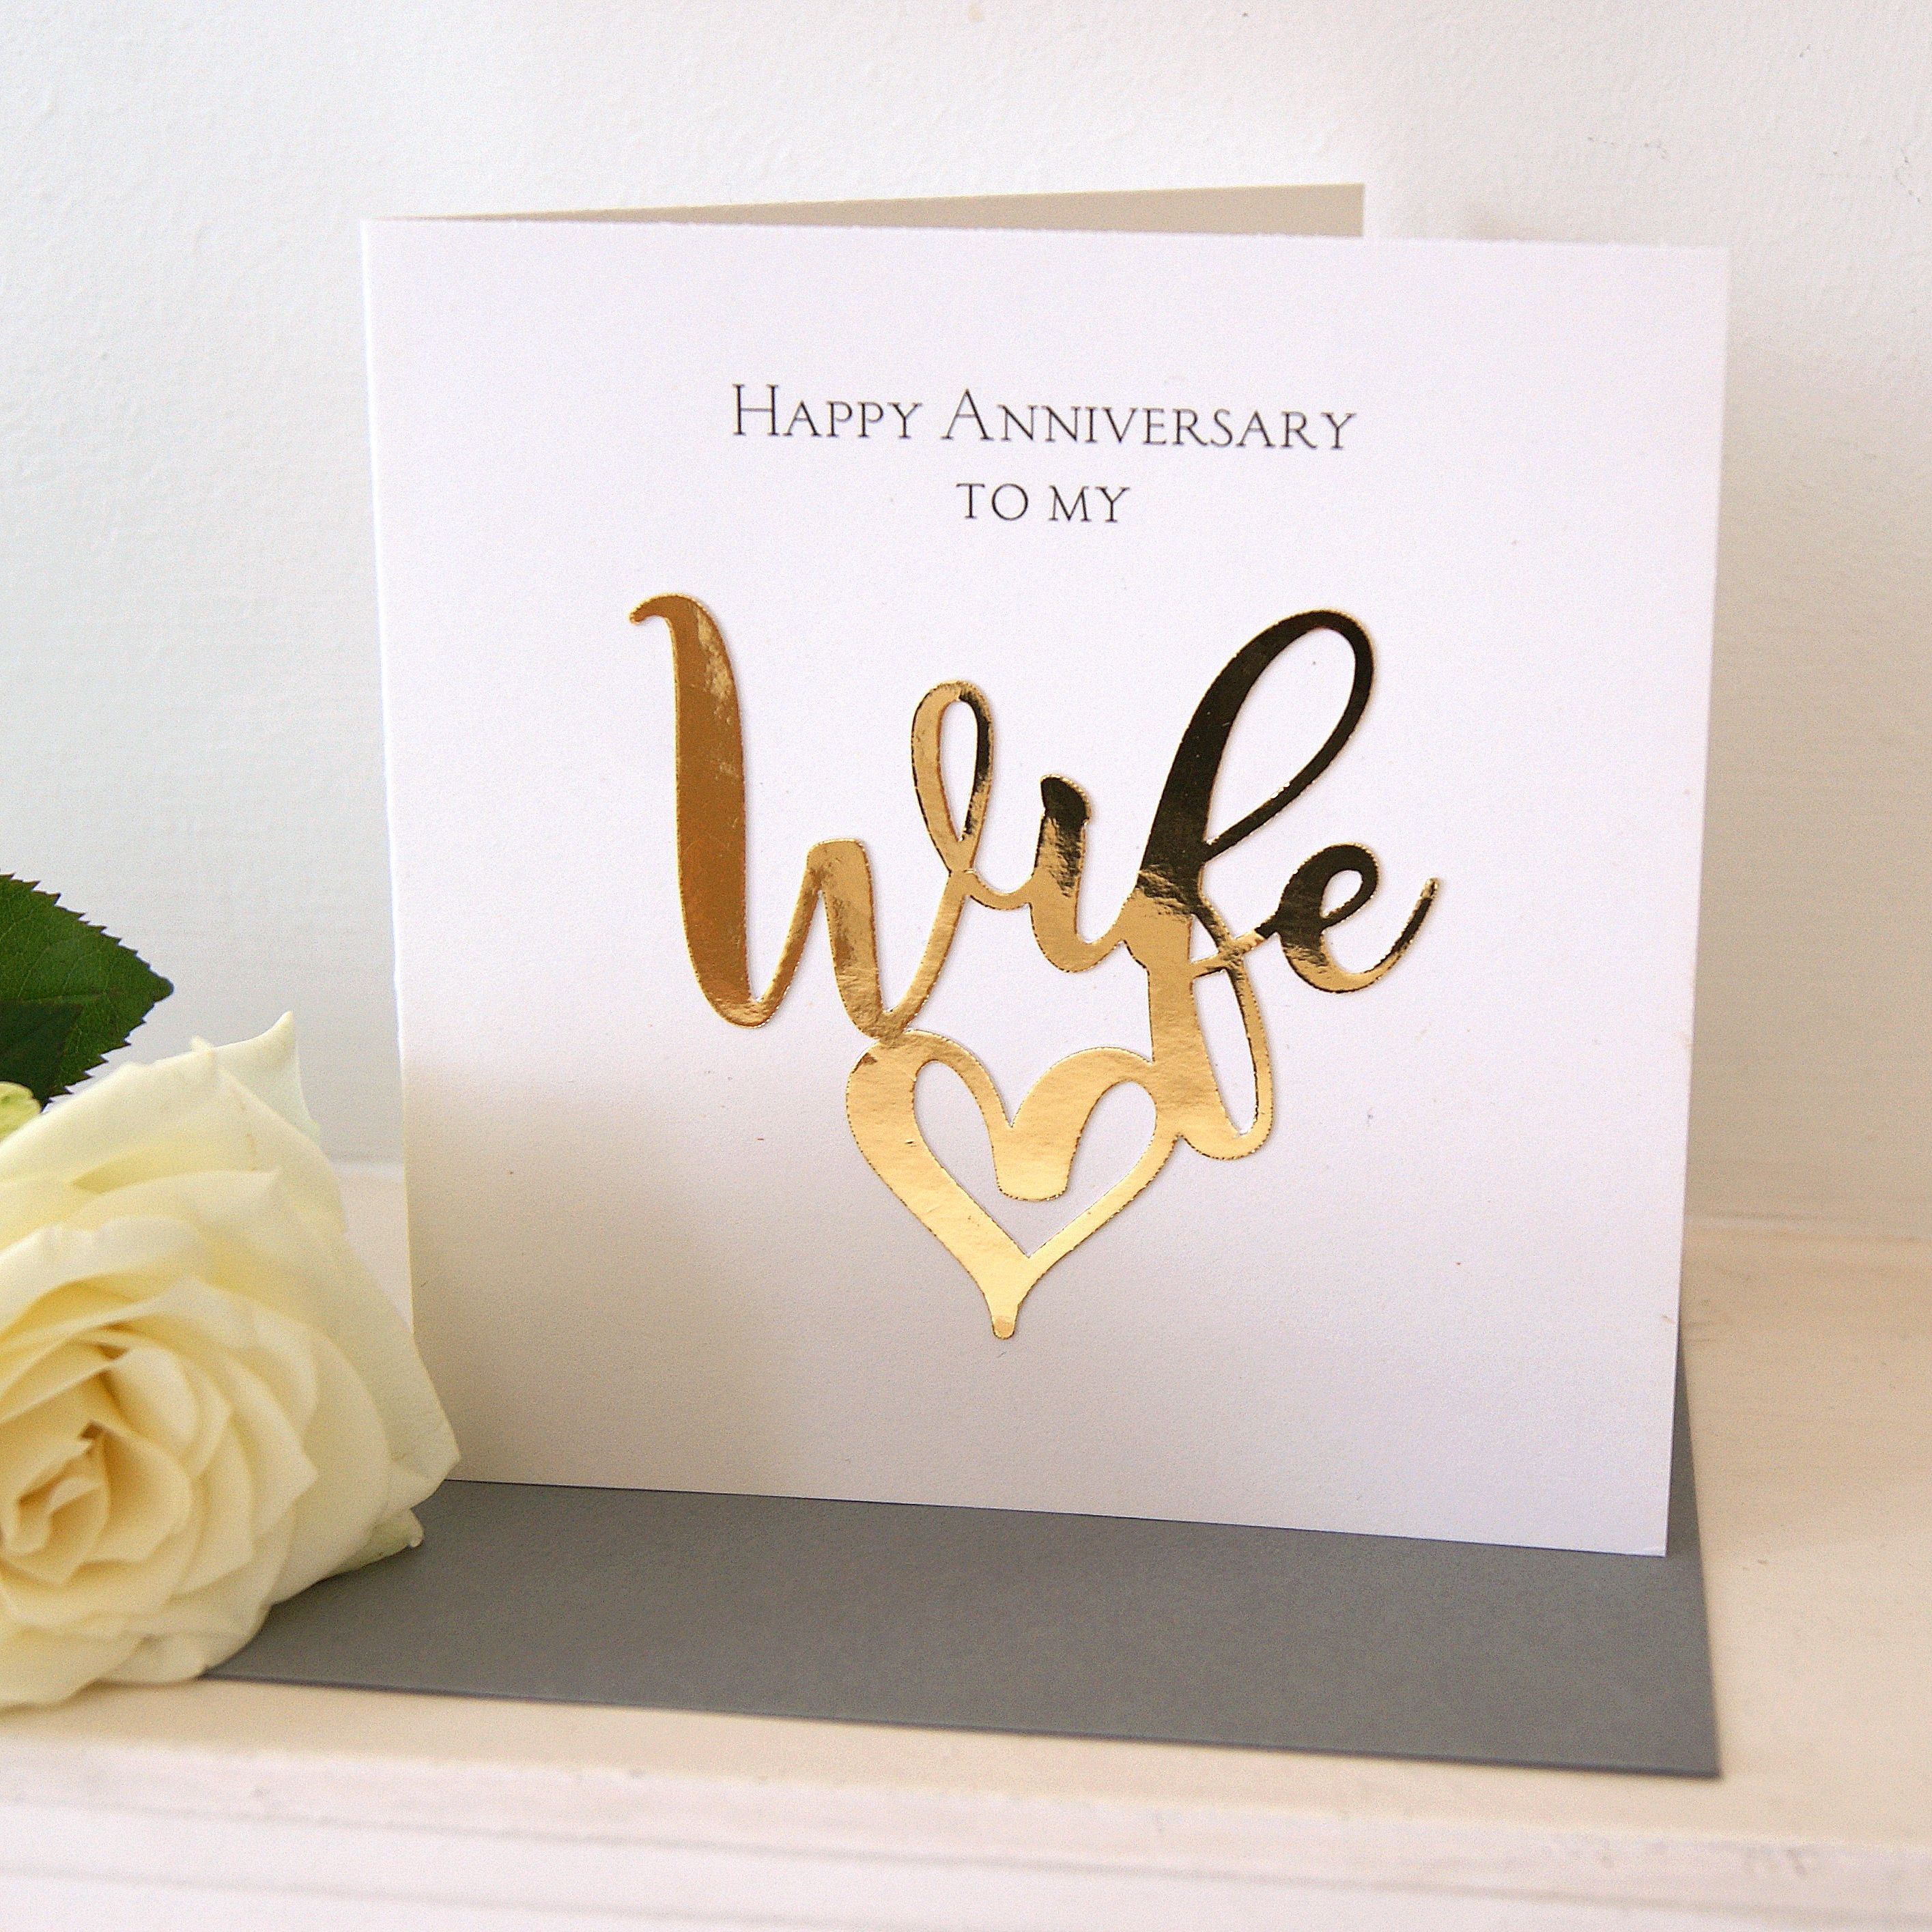 Wife Happy Anniversary Gold Luxe Card in 2020